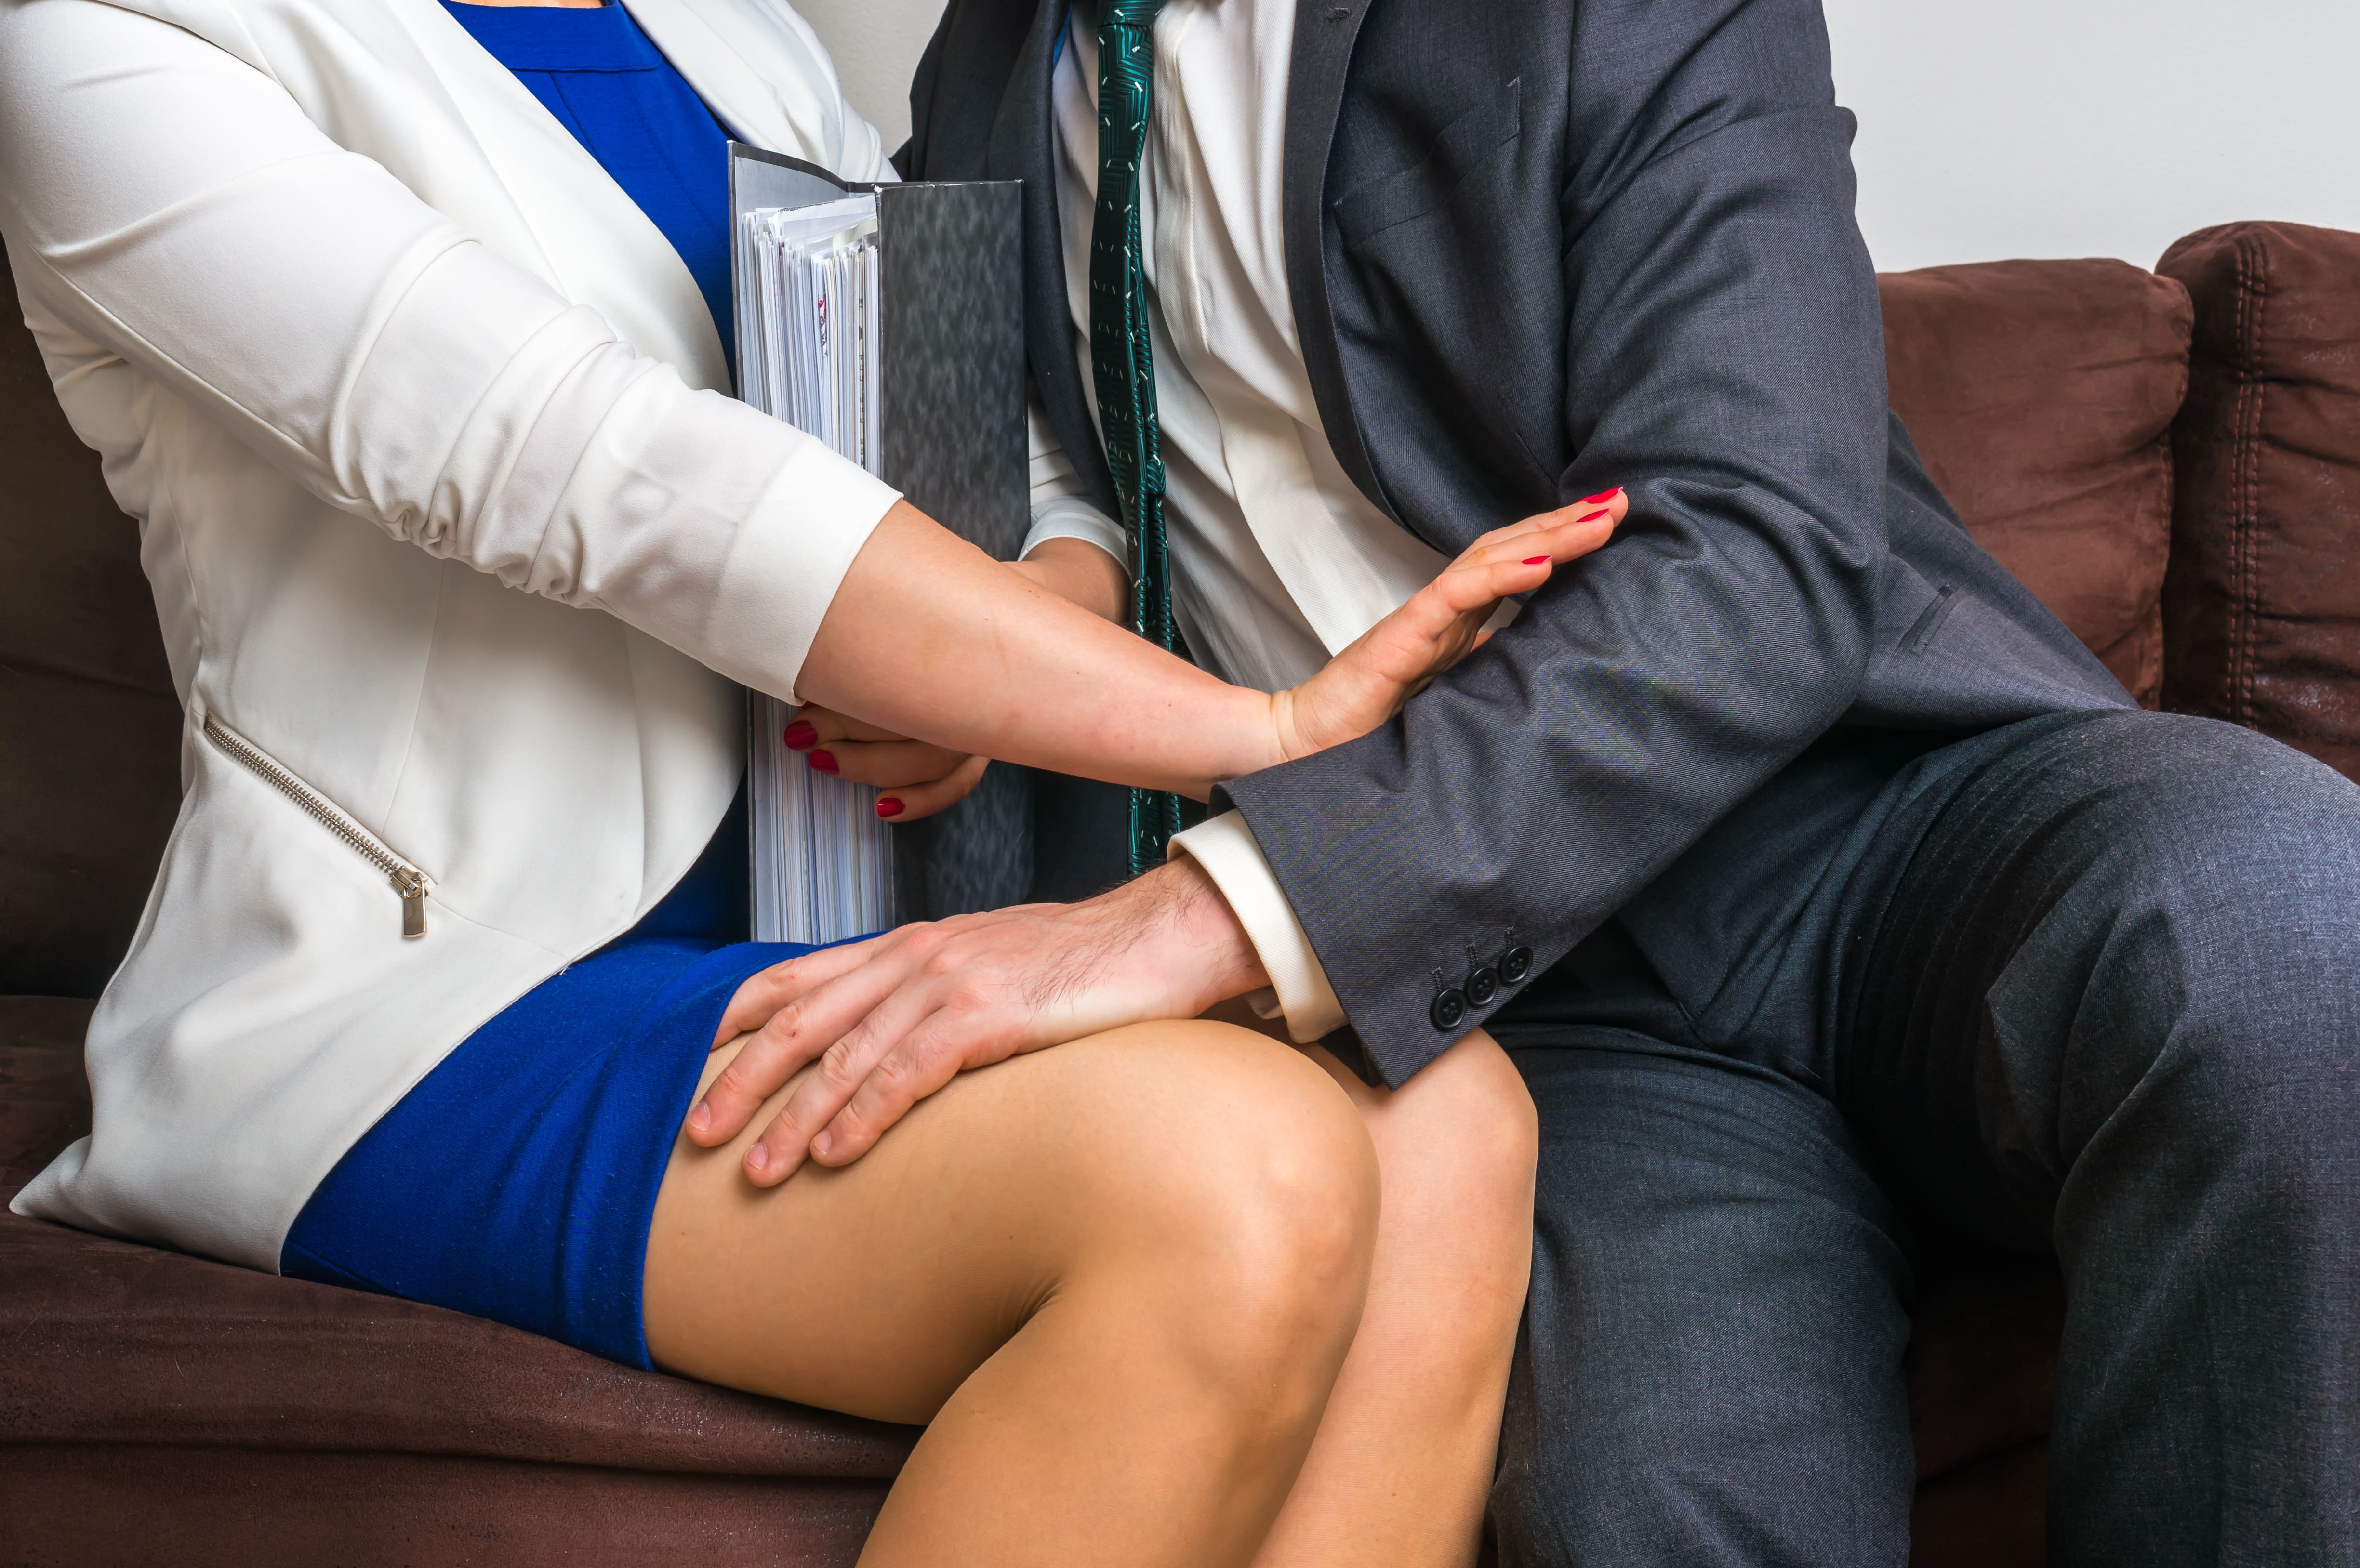 Sexual Harassment Lawyer at Kitay Law Offices